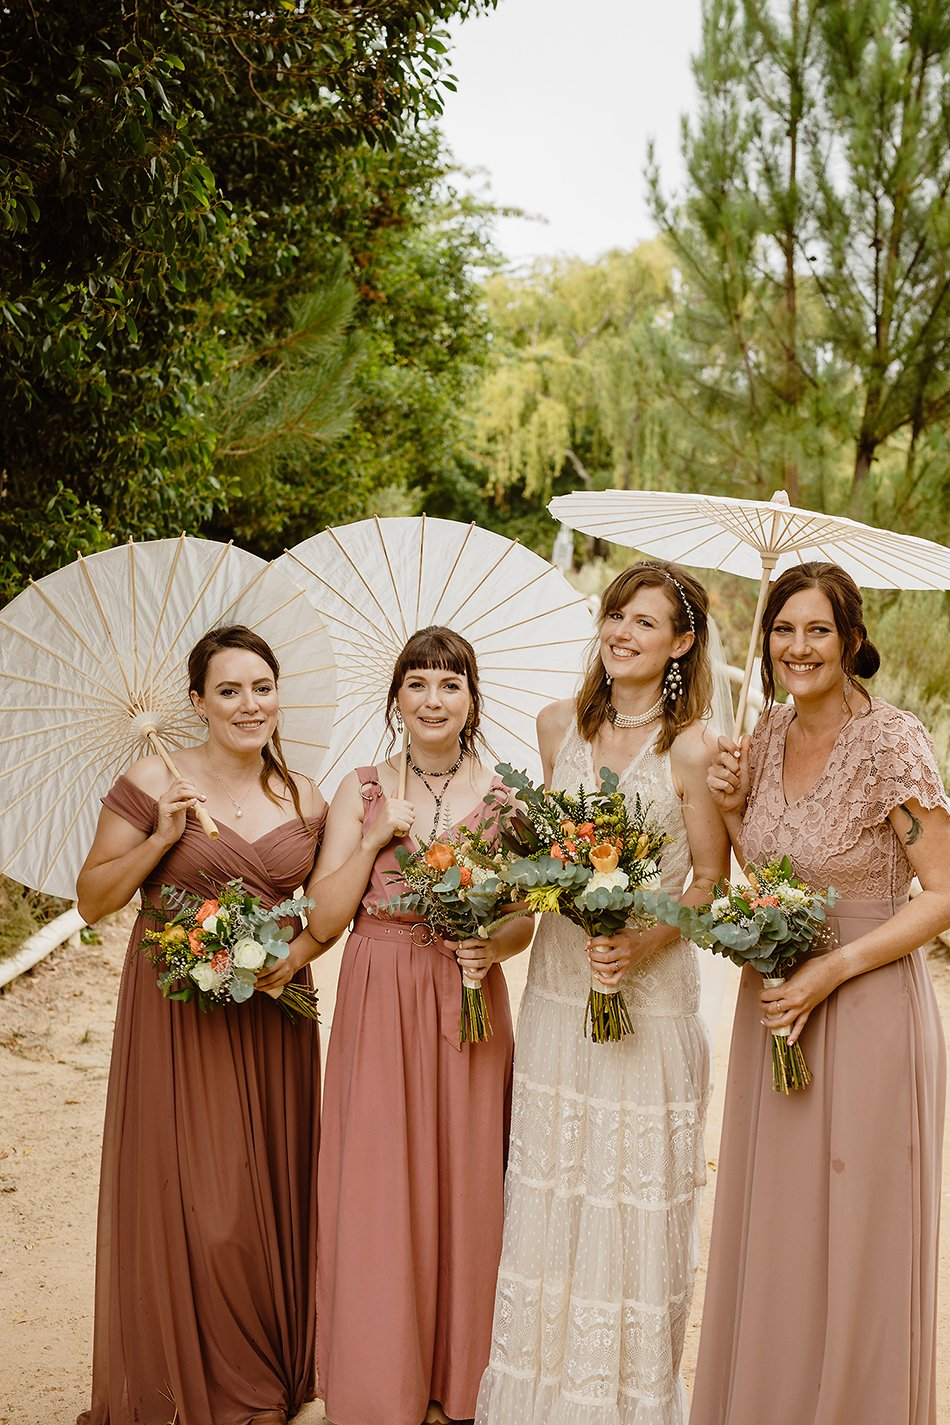 wedding at old mac daddy - elgin valley river - boho styled woodlands wedding - duane smith photography - michelle & matthew - married (3)